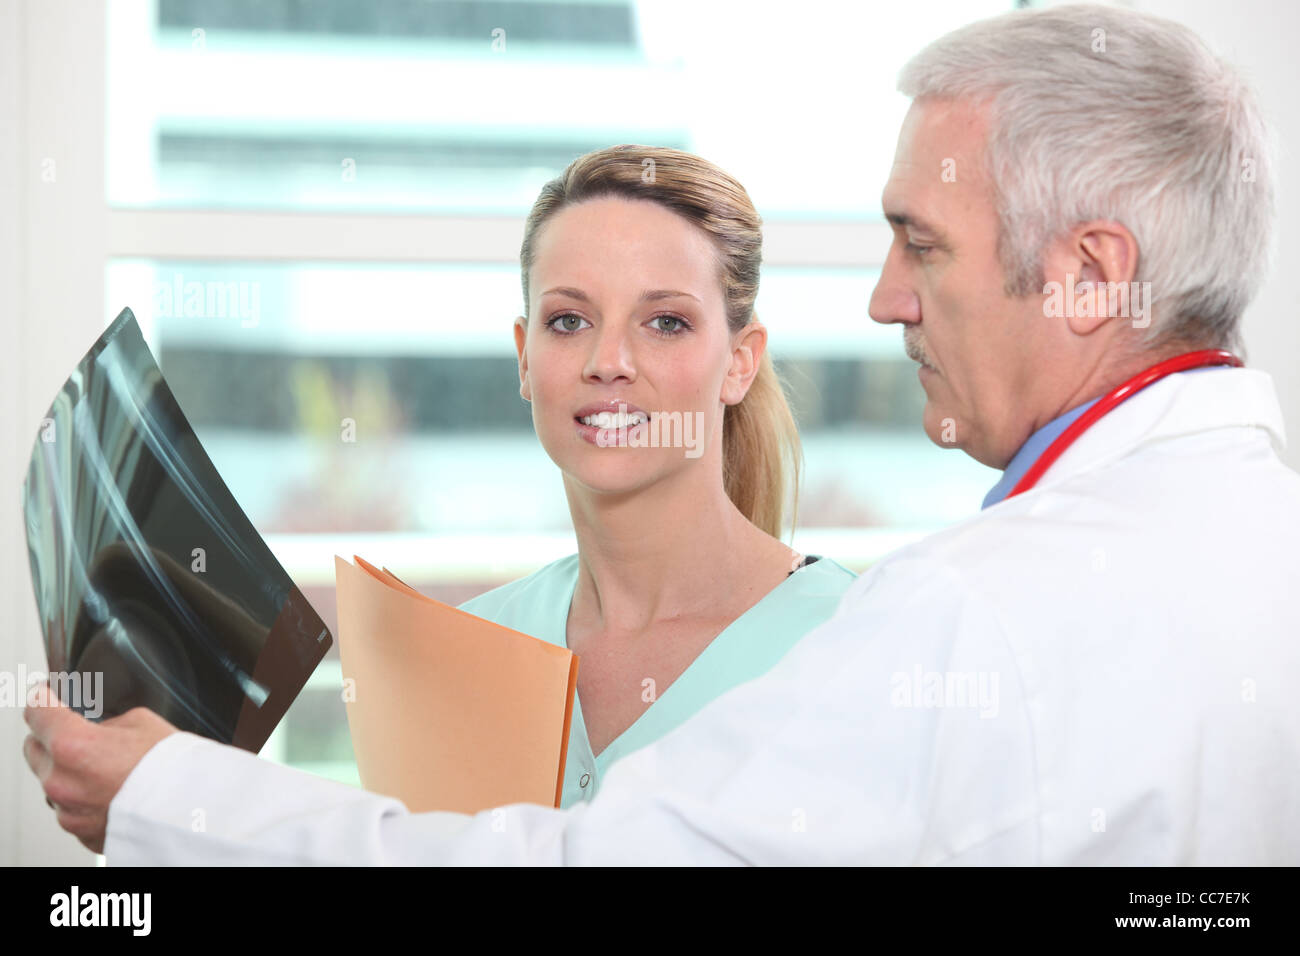 Doctor and colleague examining x-ray - Stock Image